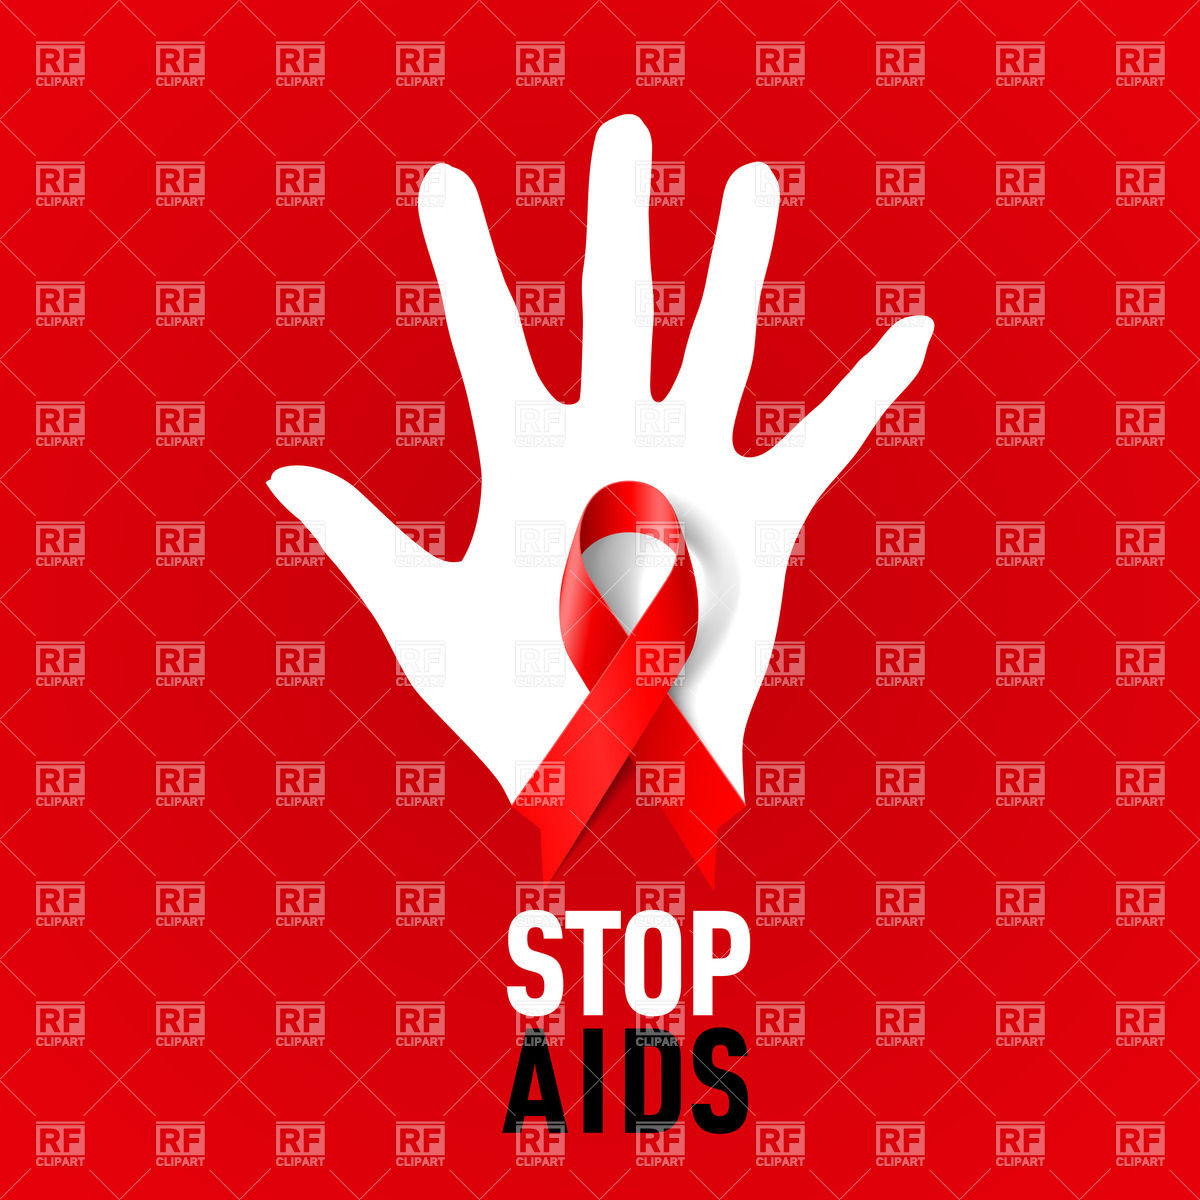 Stop AIDS sign with white hand and red ribbon Vector Image #26075.